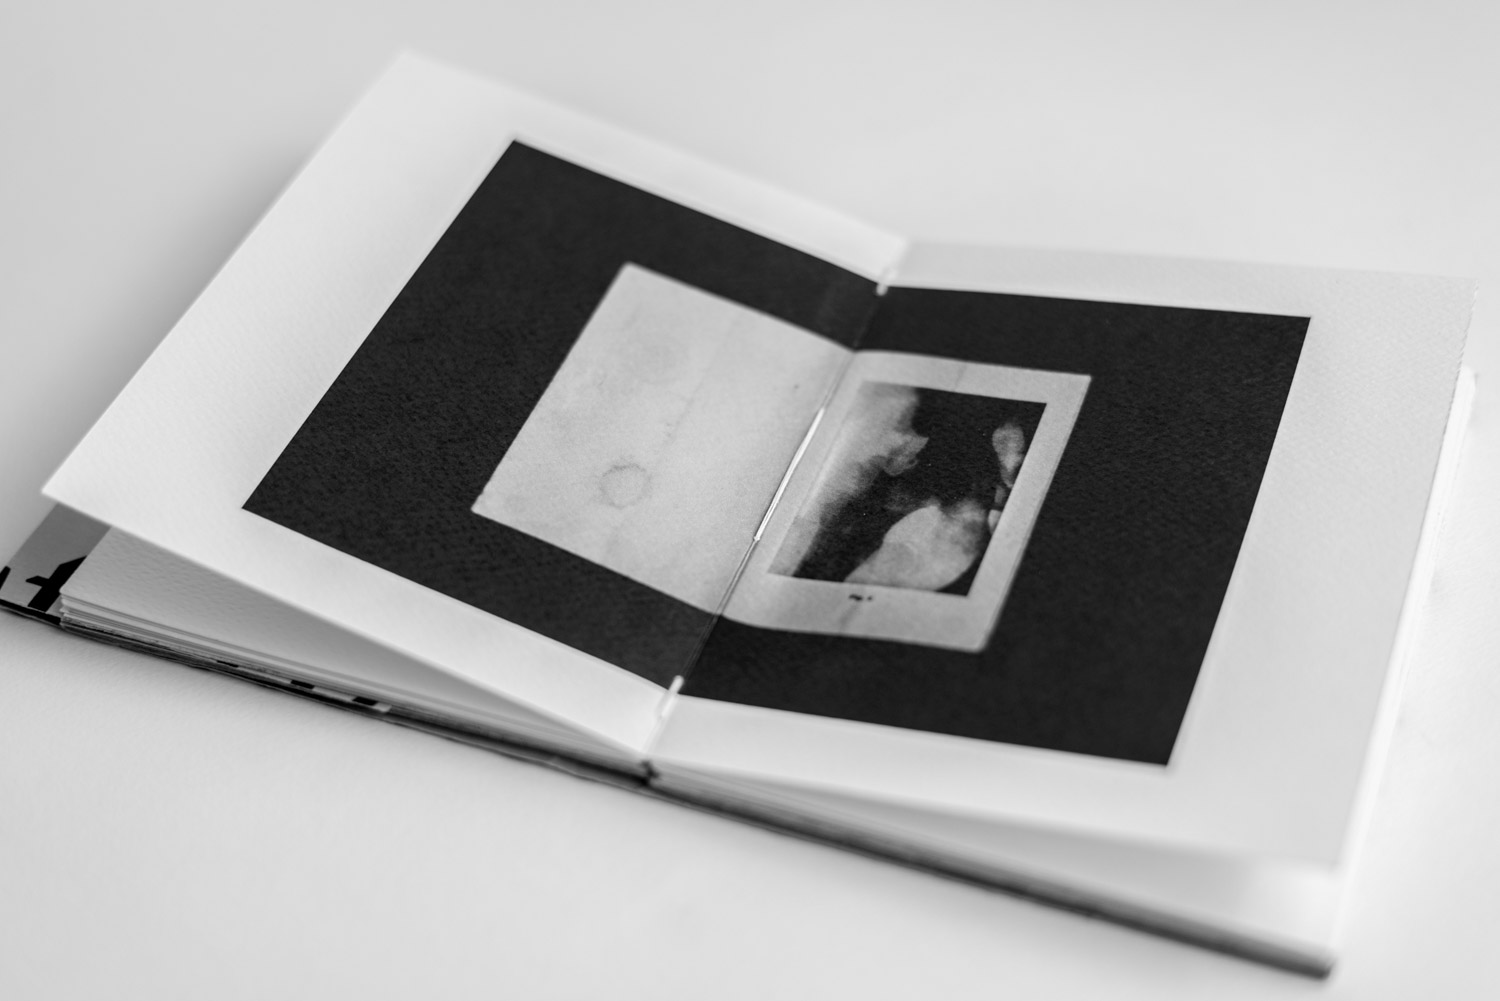 x-rays in the Artist Book by Stefano Conti